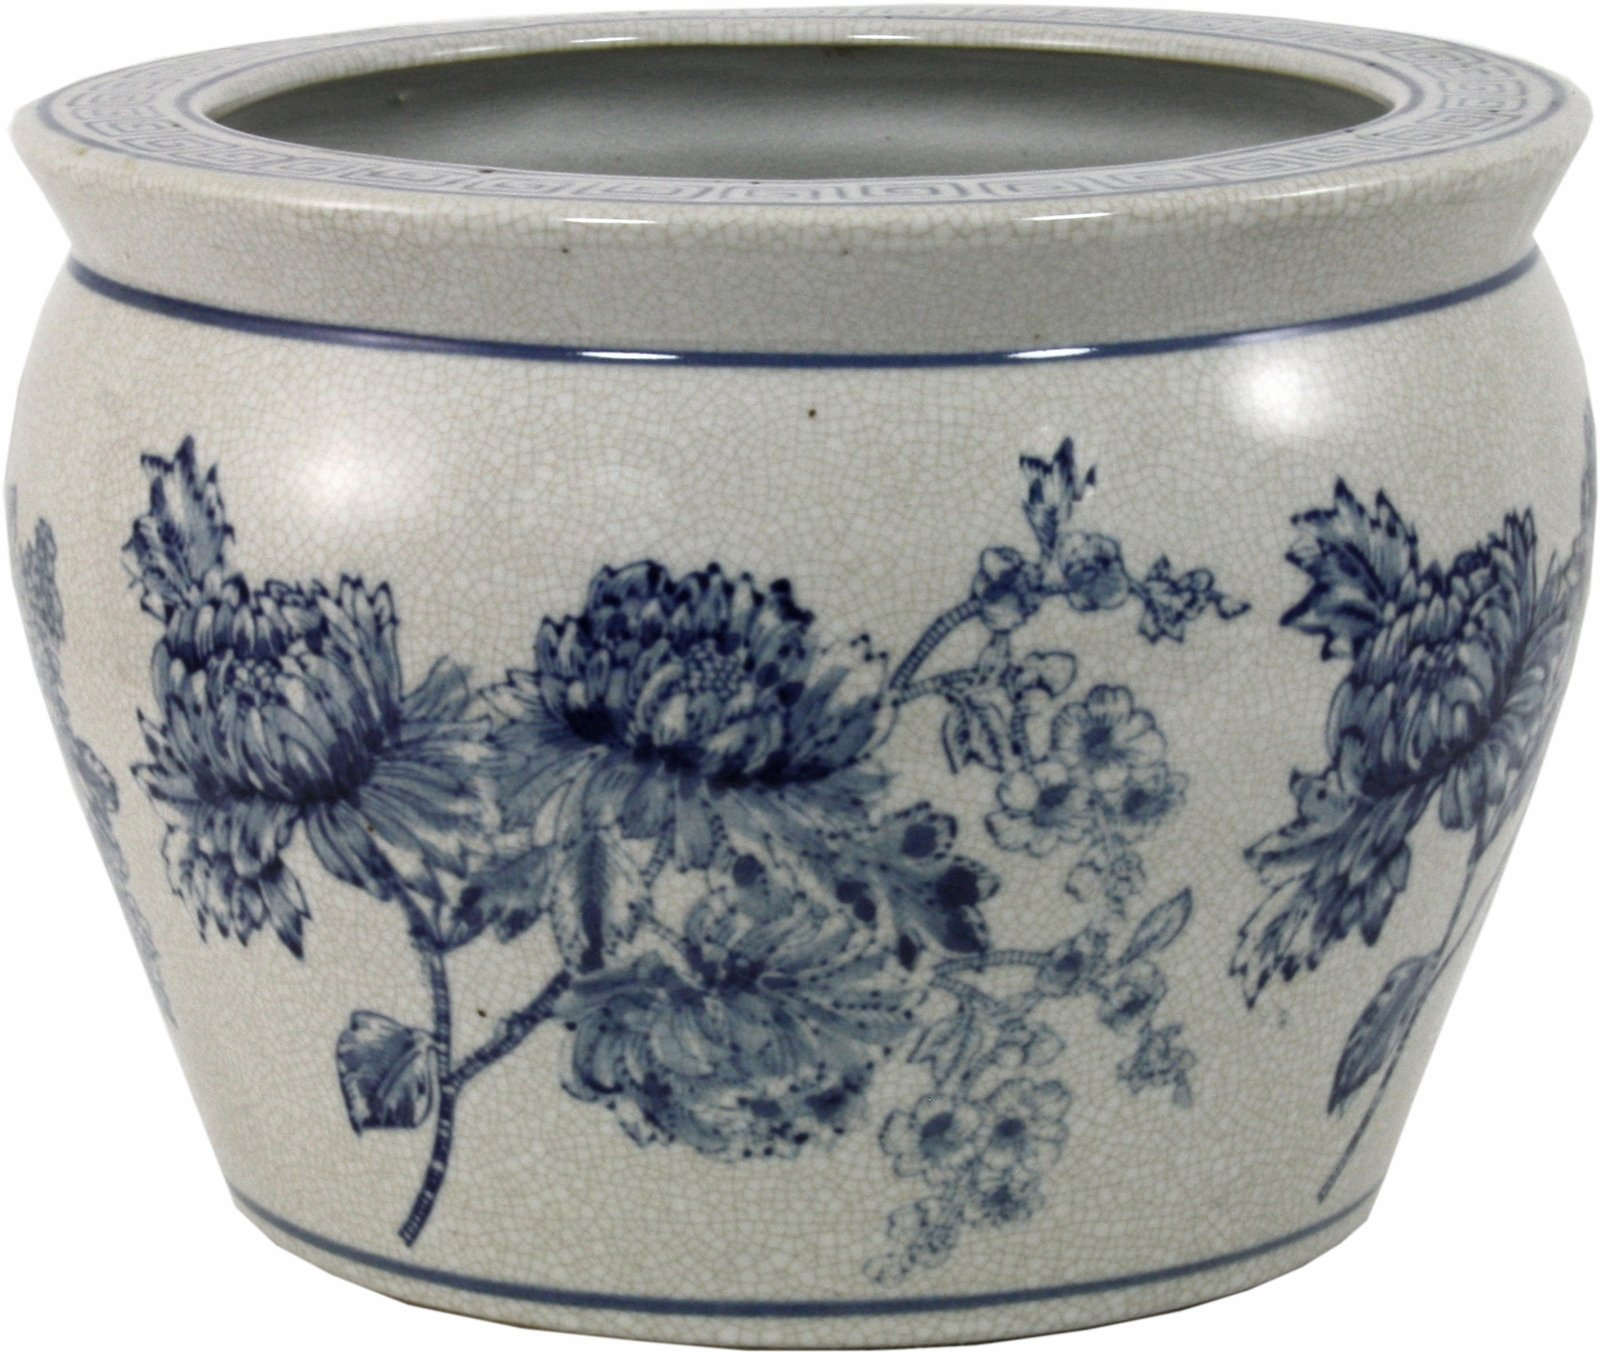 Ceramic Planter, Vintage Blue & White Magnolia Design